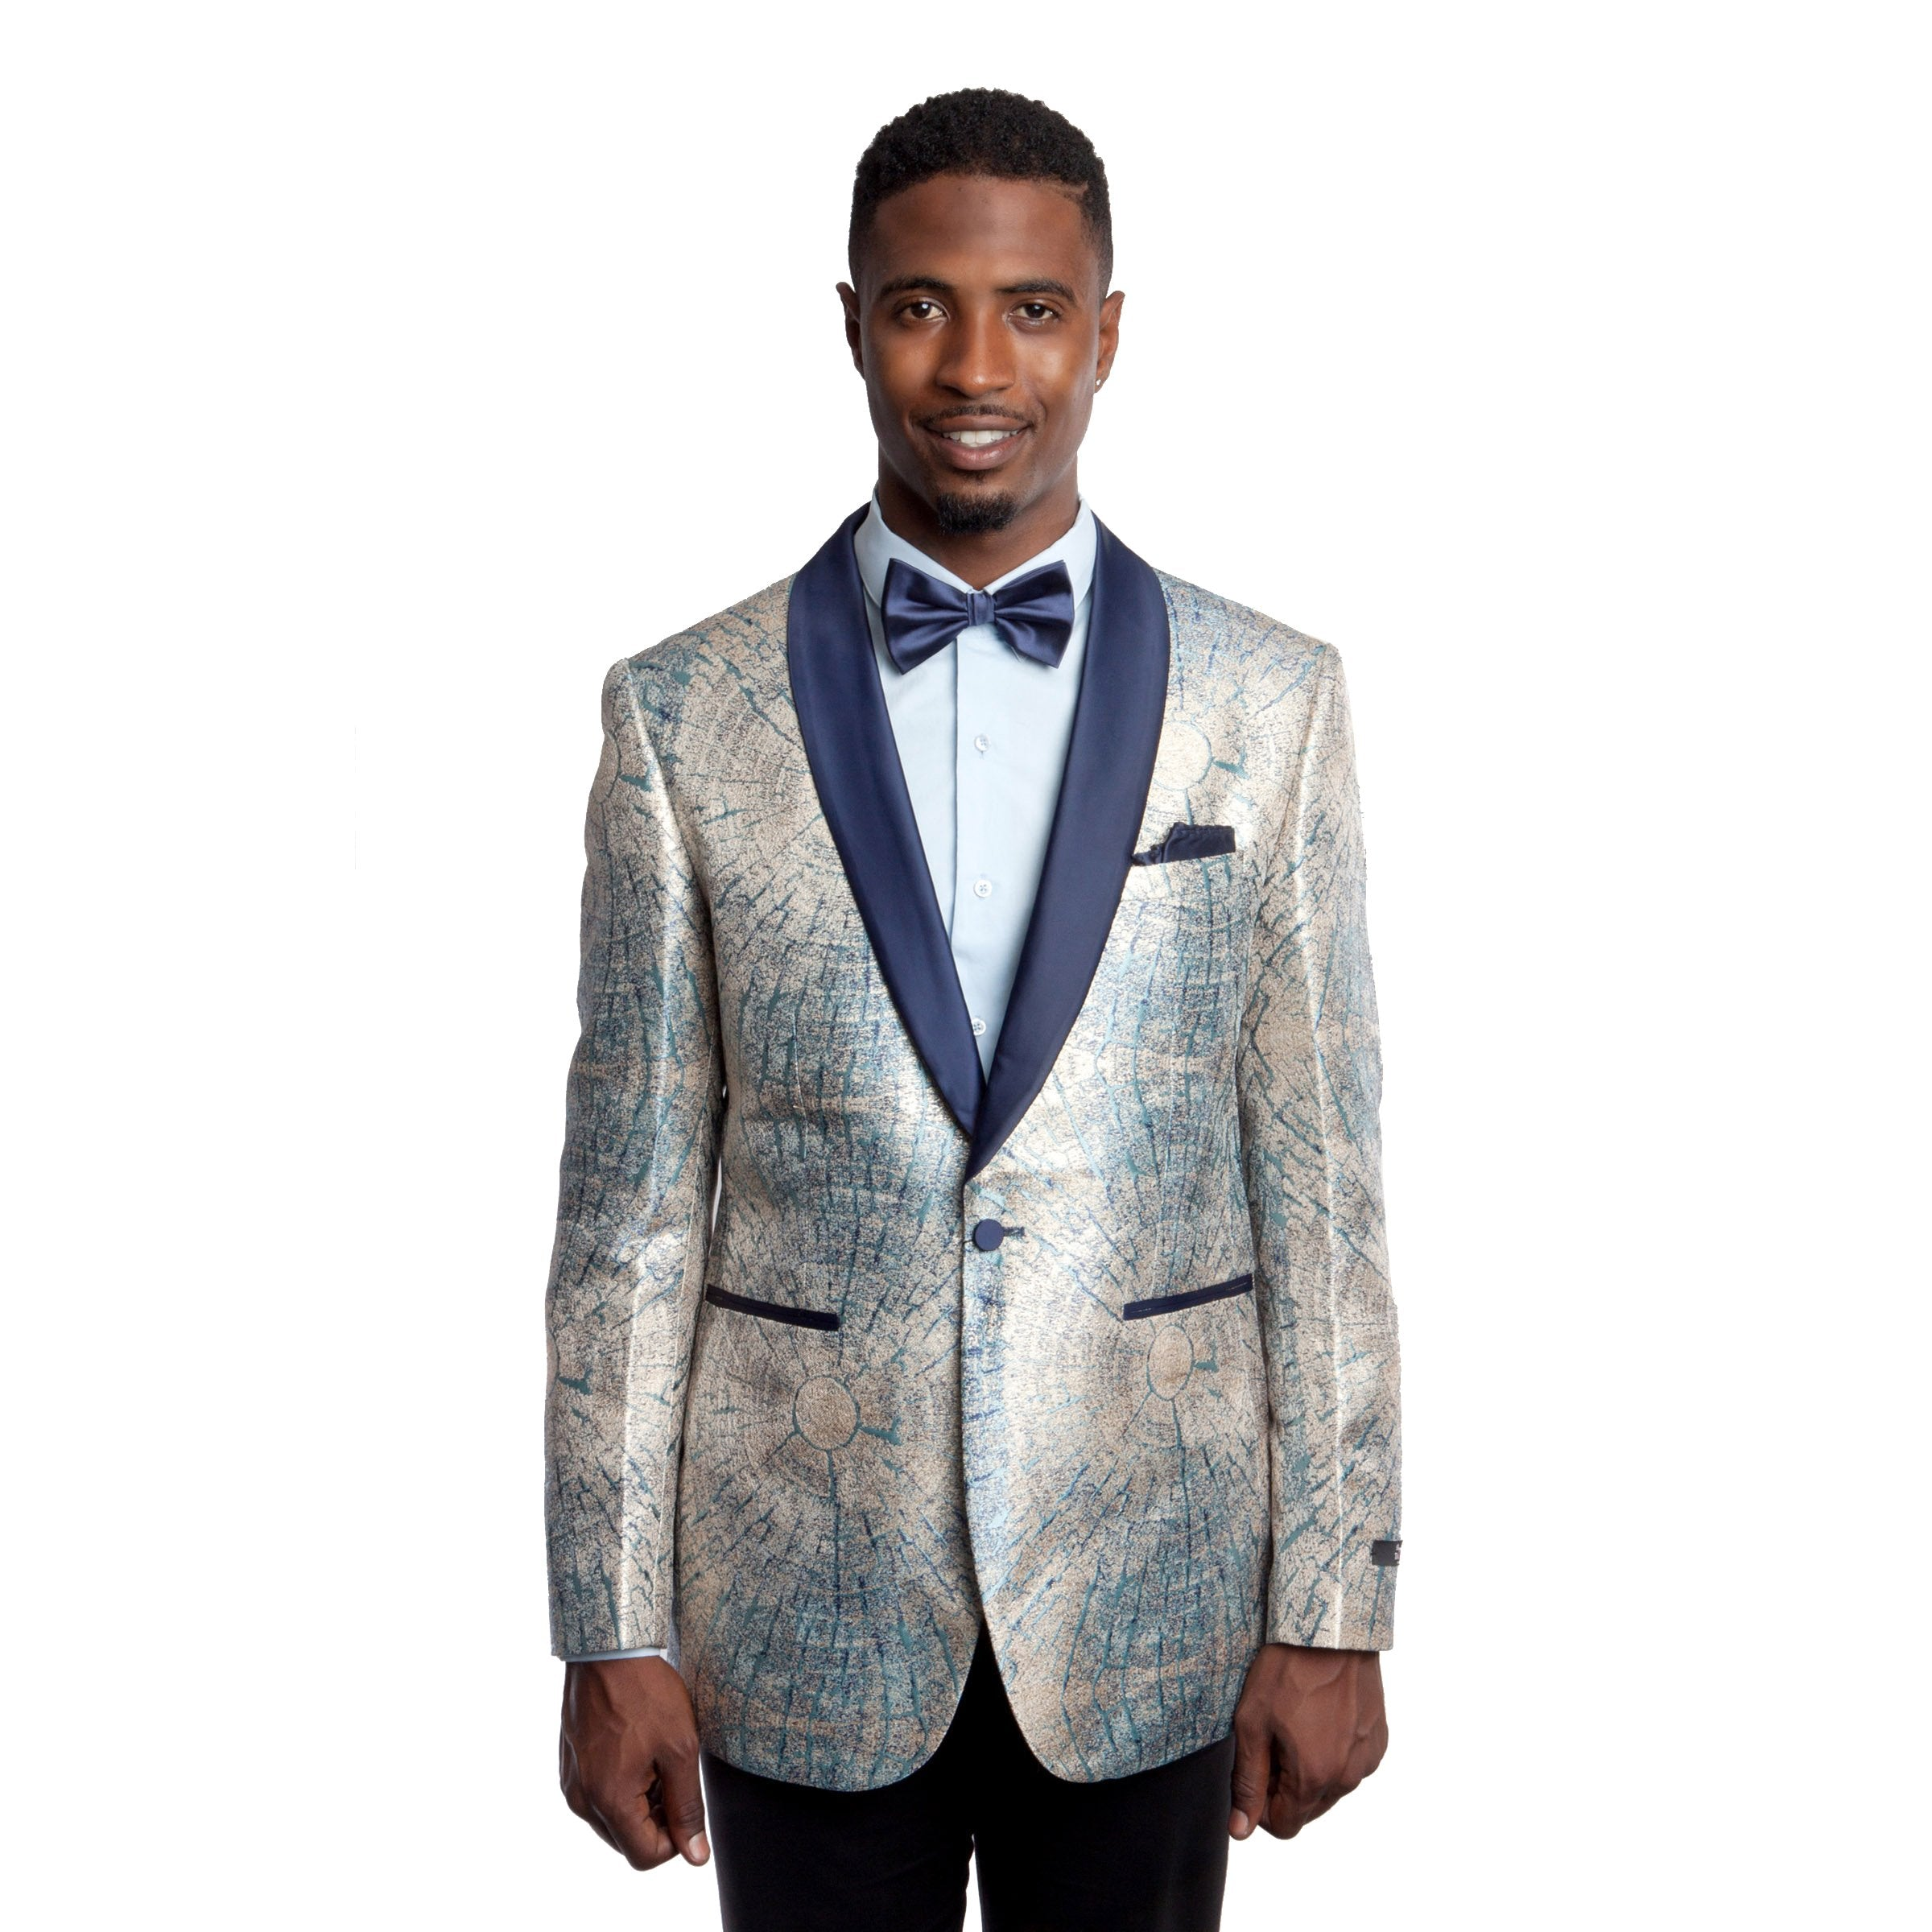 Modern Fit Shiny Pattern Design Satin Shawl Collar Blazer Jacket For Men